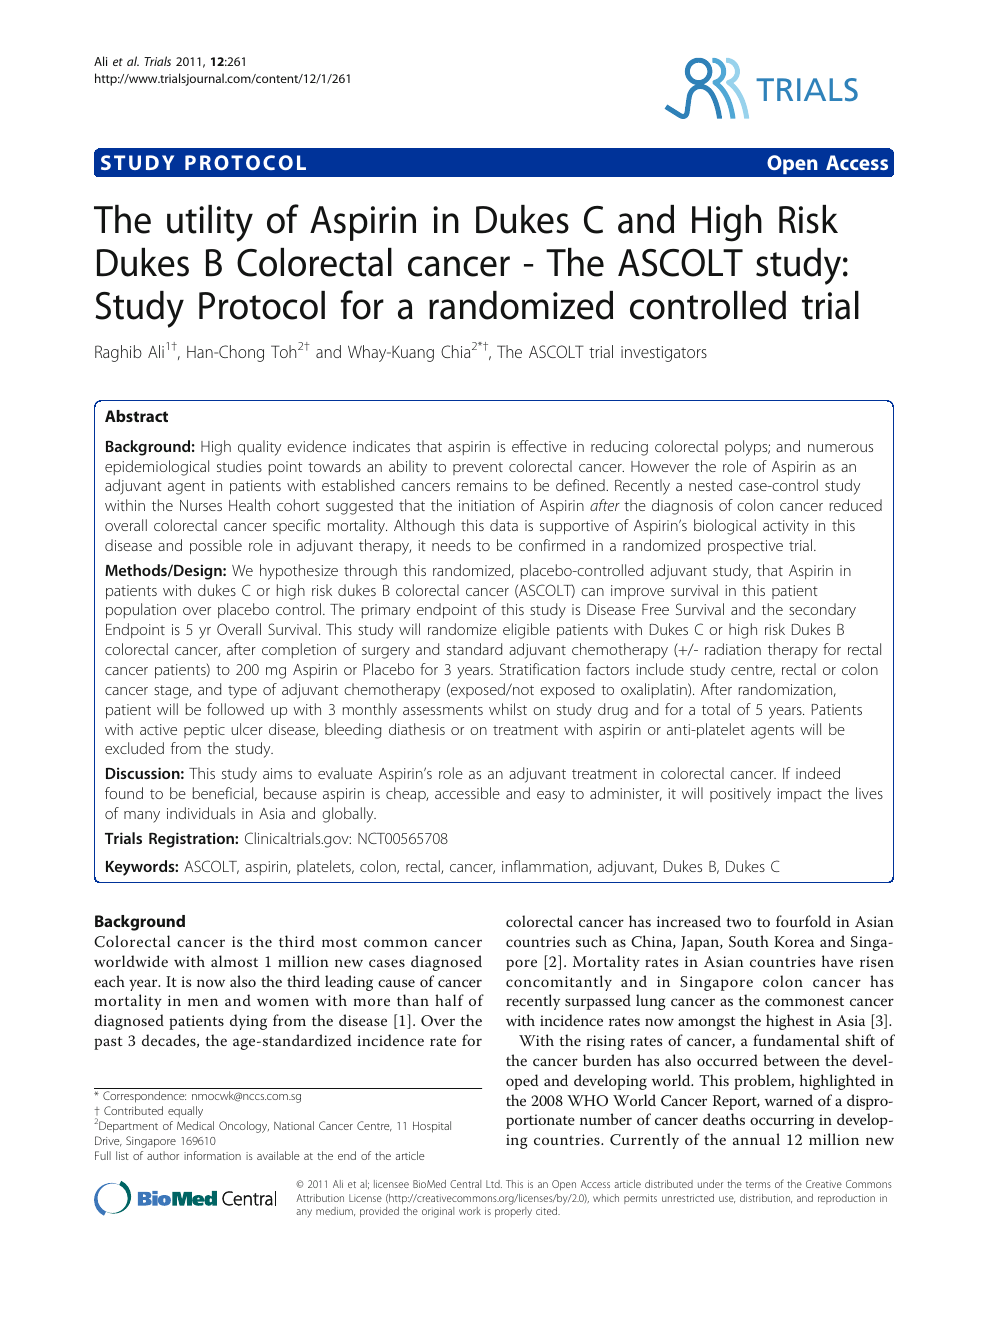 The utility of Aspirin in dukes C and high risk dukes B colorectal